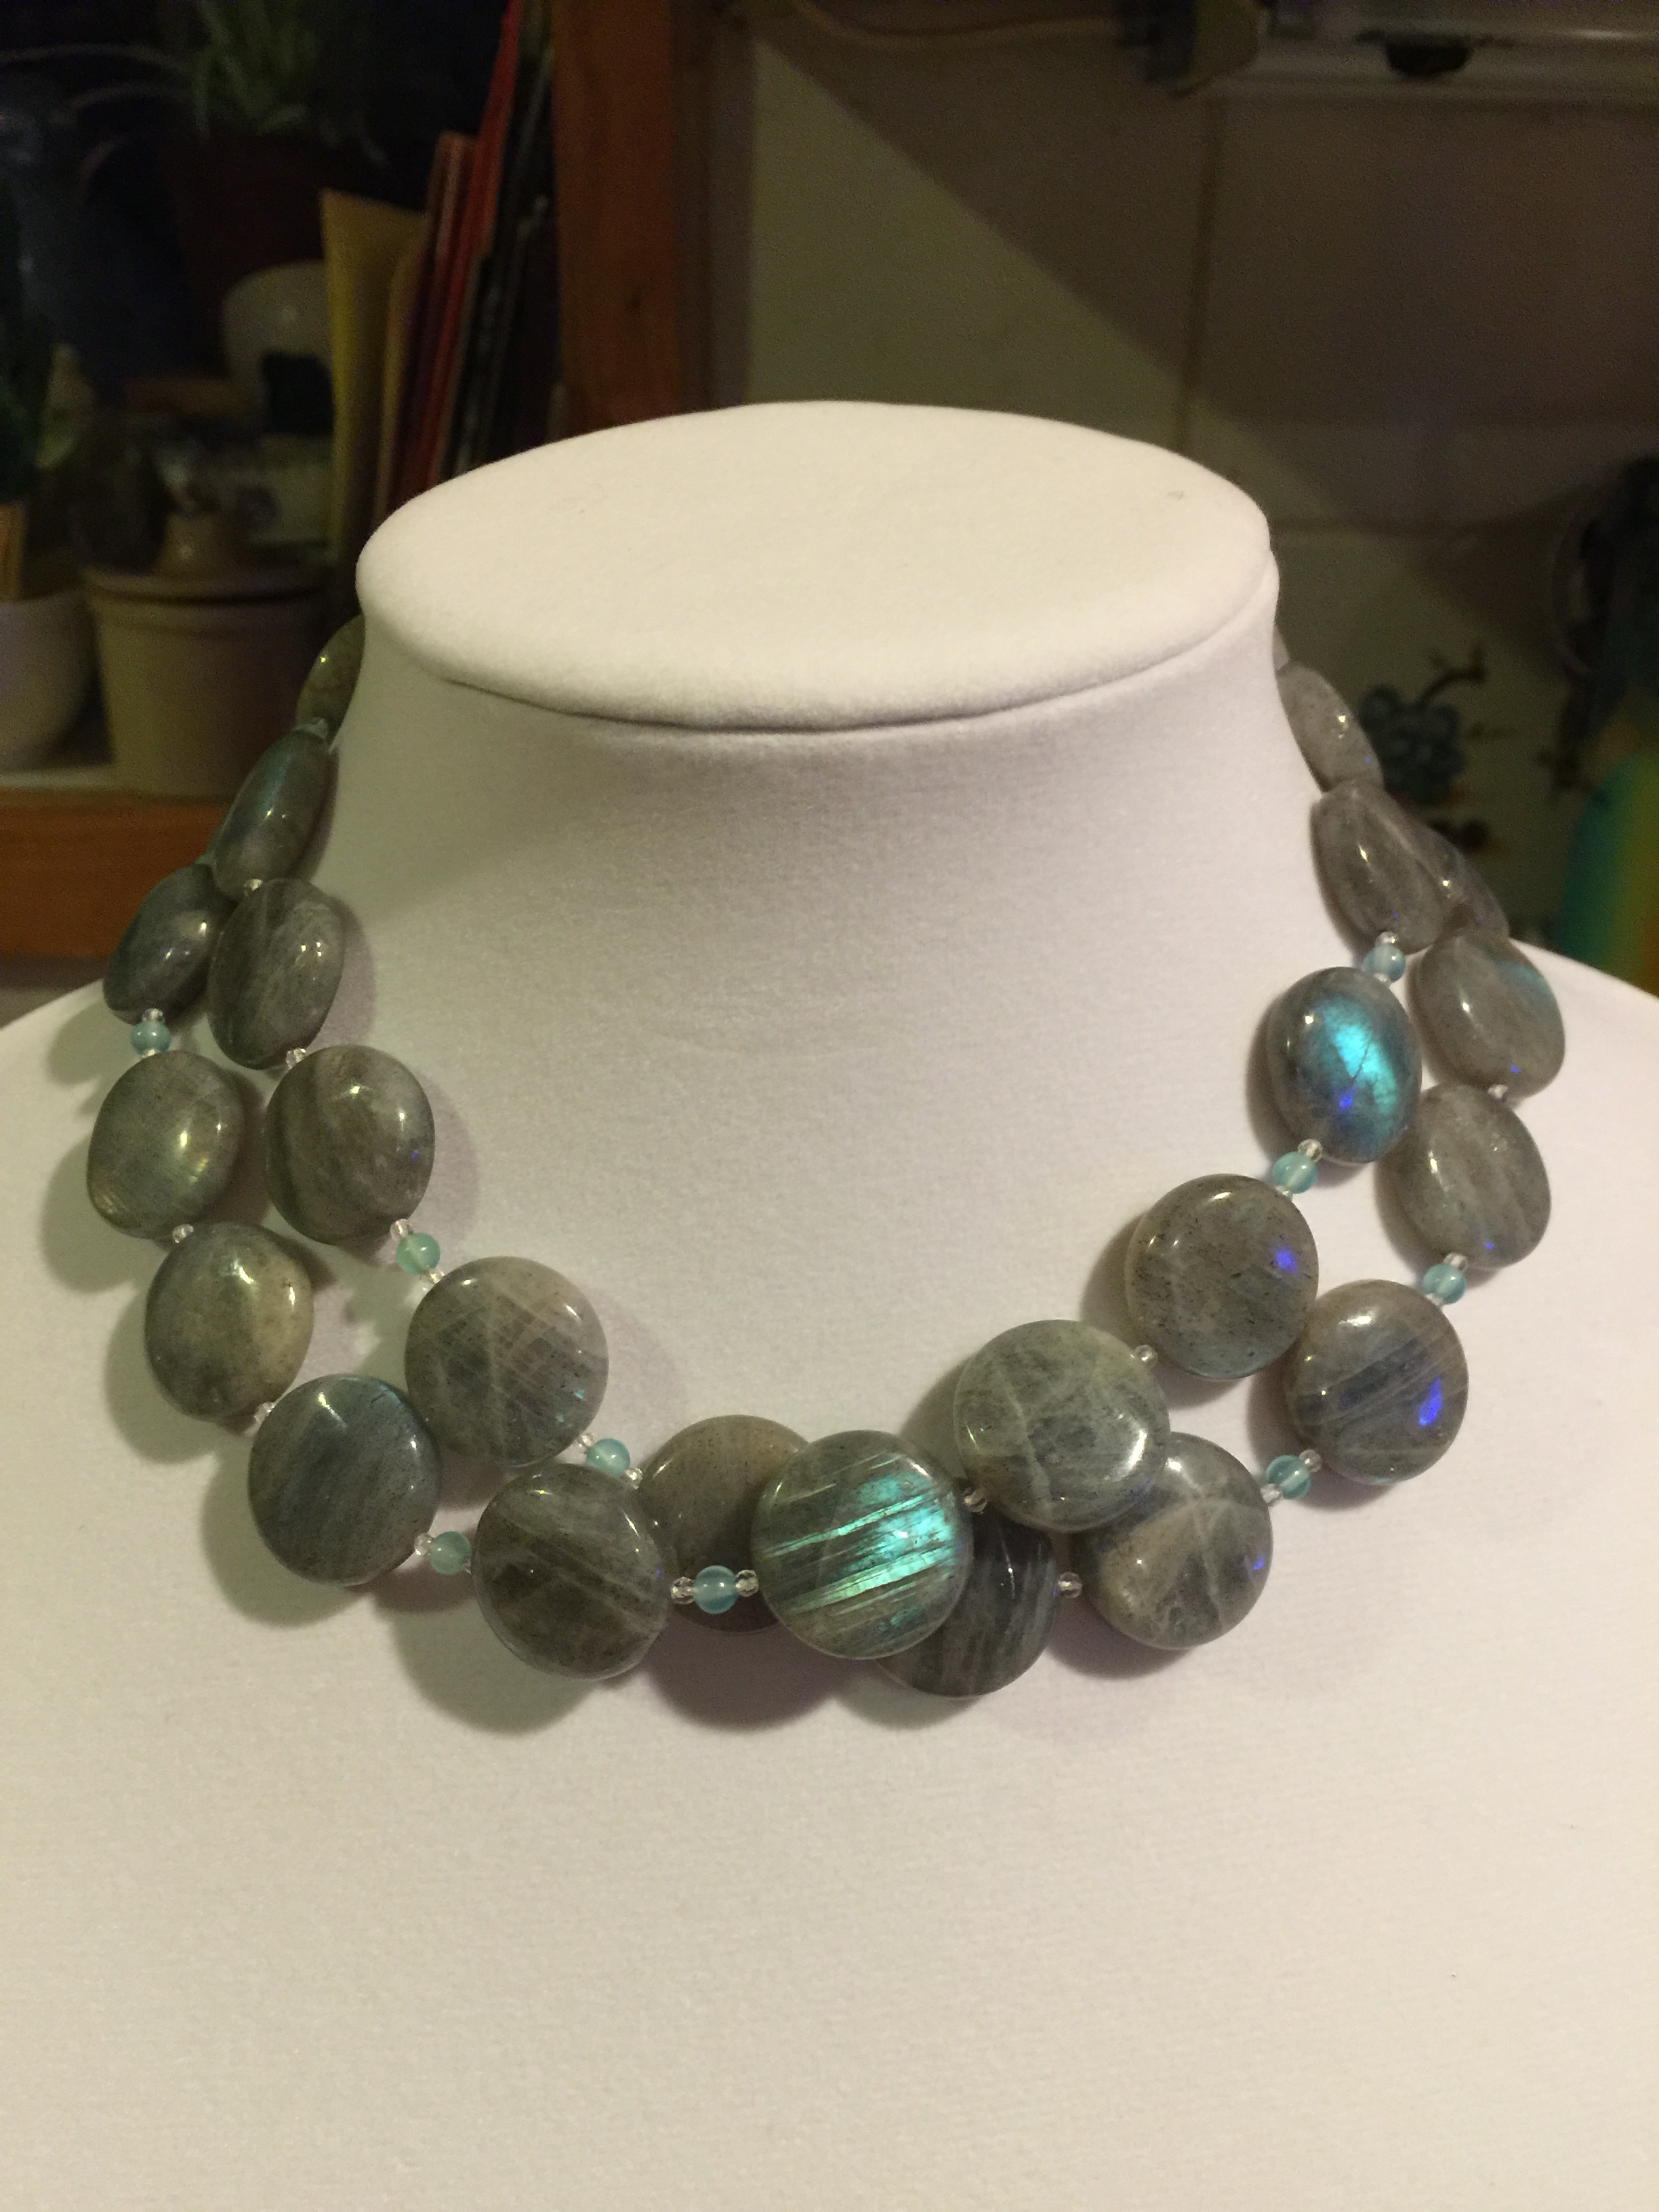 labradorite NECKLACE  Long labradorite necklace with aqua agate beads and glass beads. Handmade sterling silver clasp.